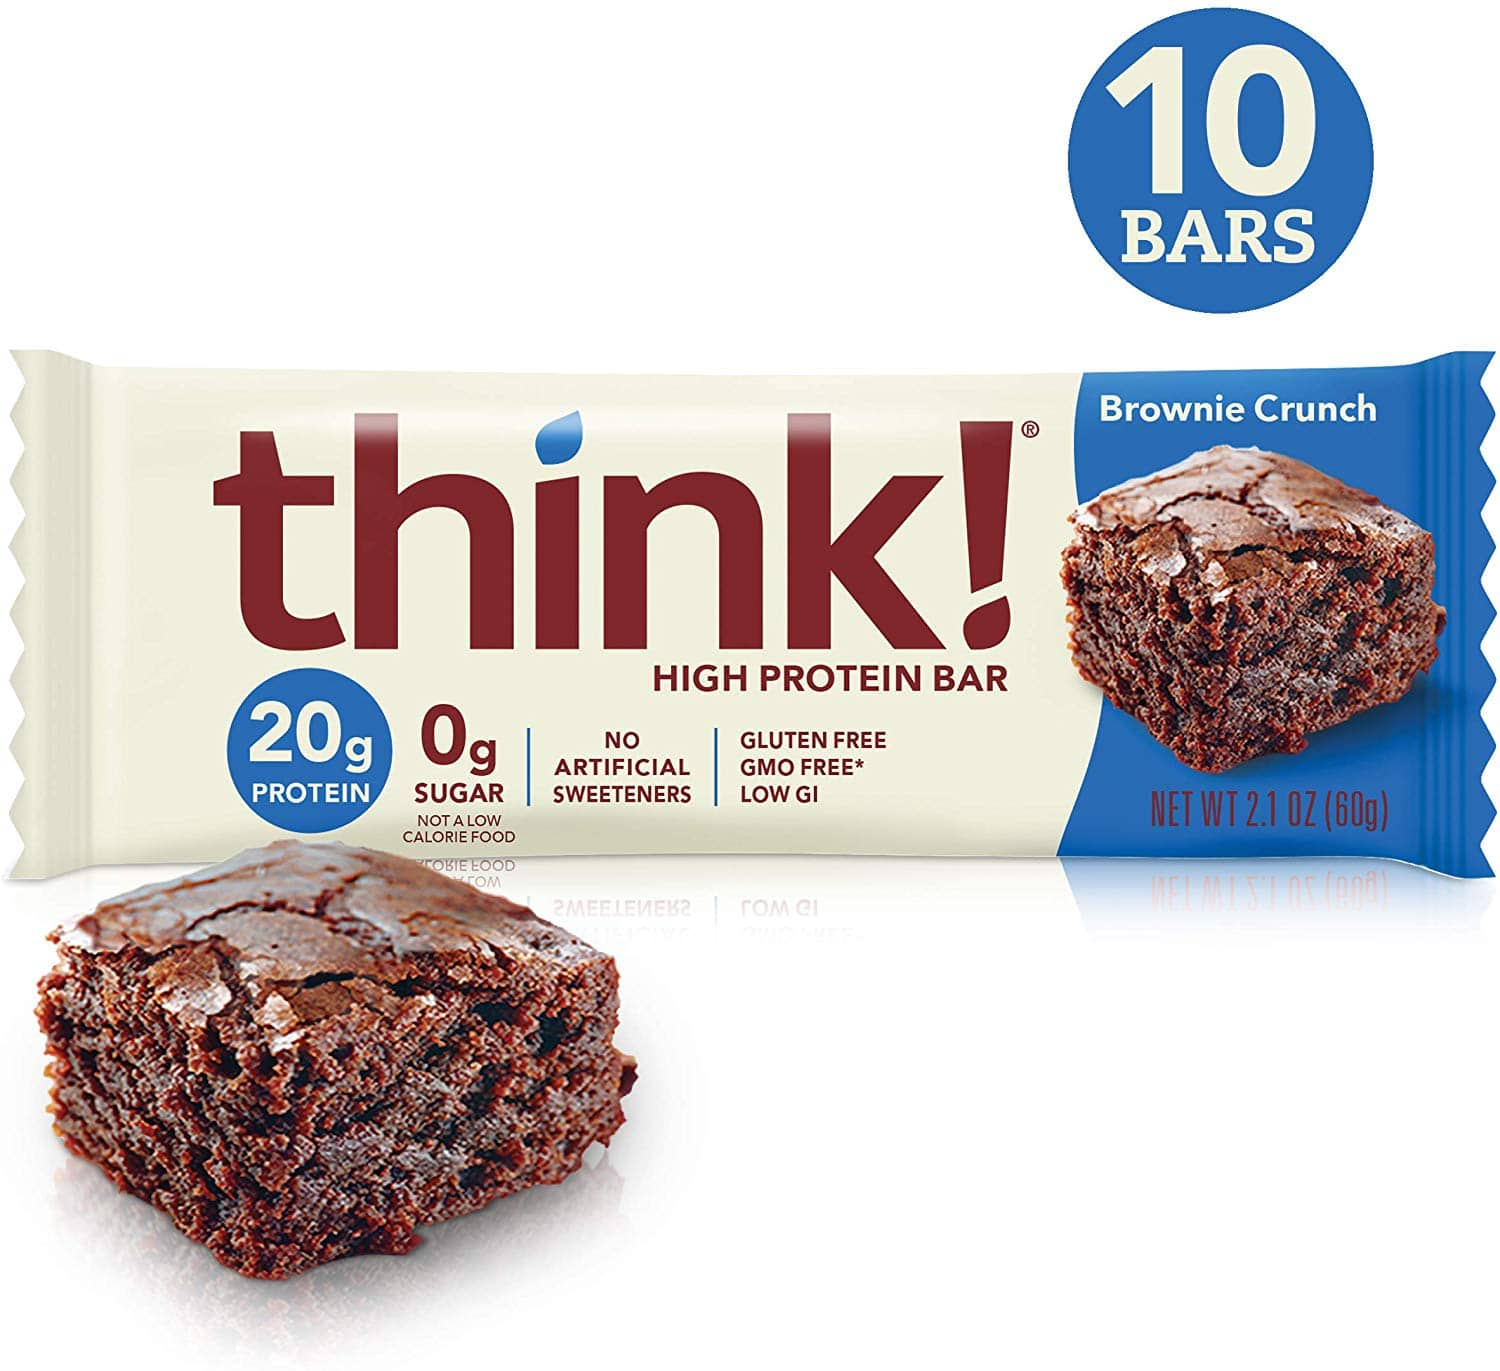 10-Ct 2.1 oz think! High Protein Bars: Brownie Crunch $7.35, Lemon Delight $6.60 w/ S&S & More + Free S&H